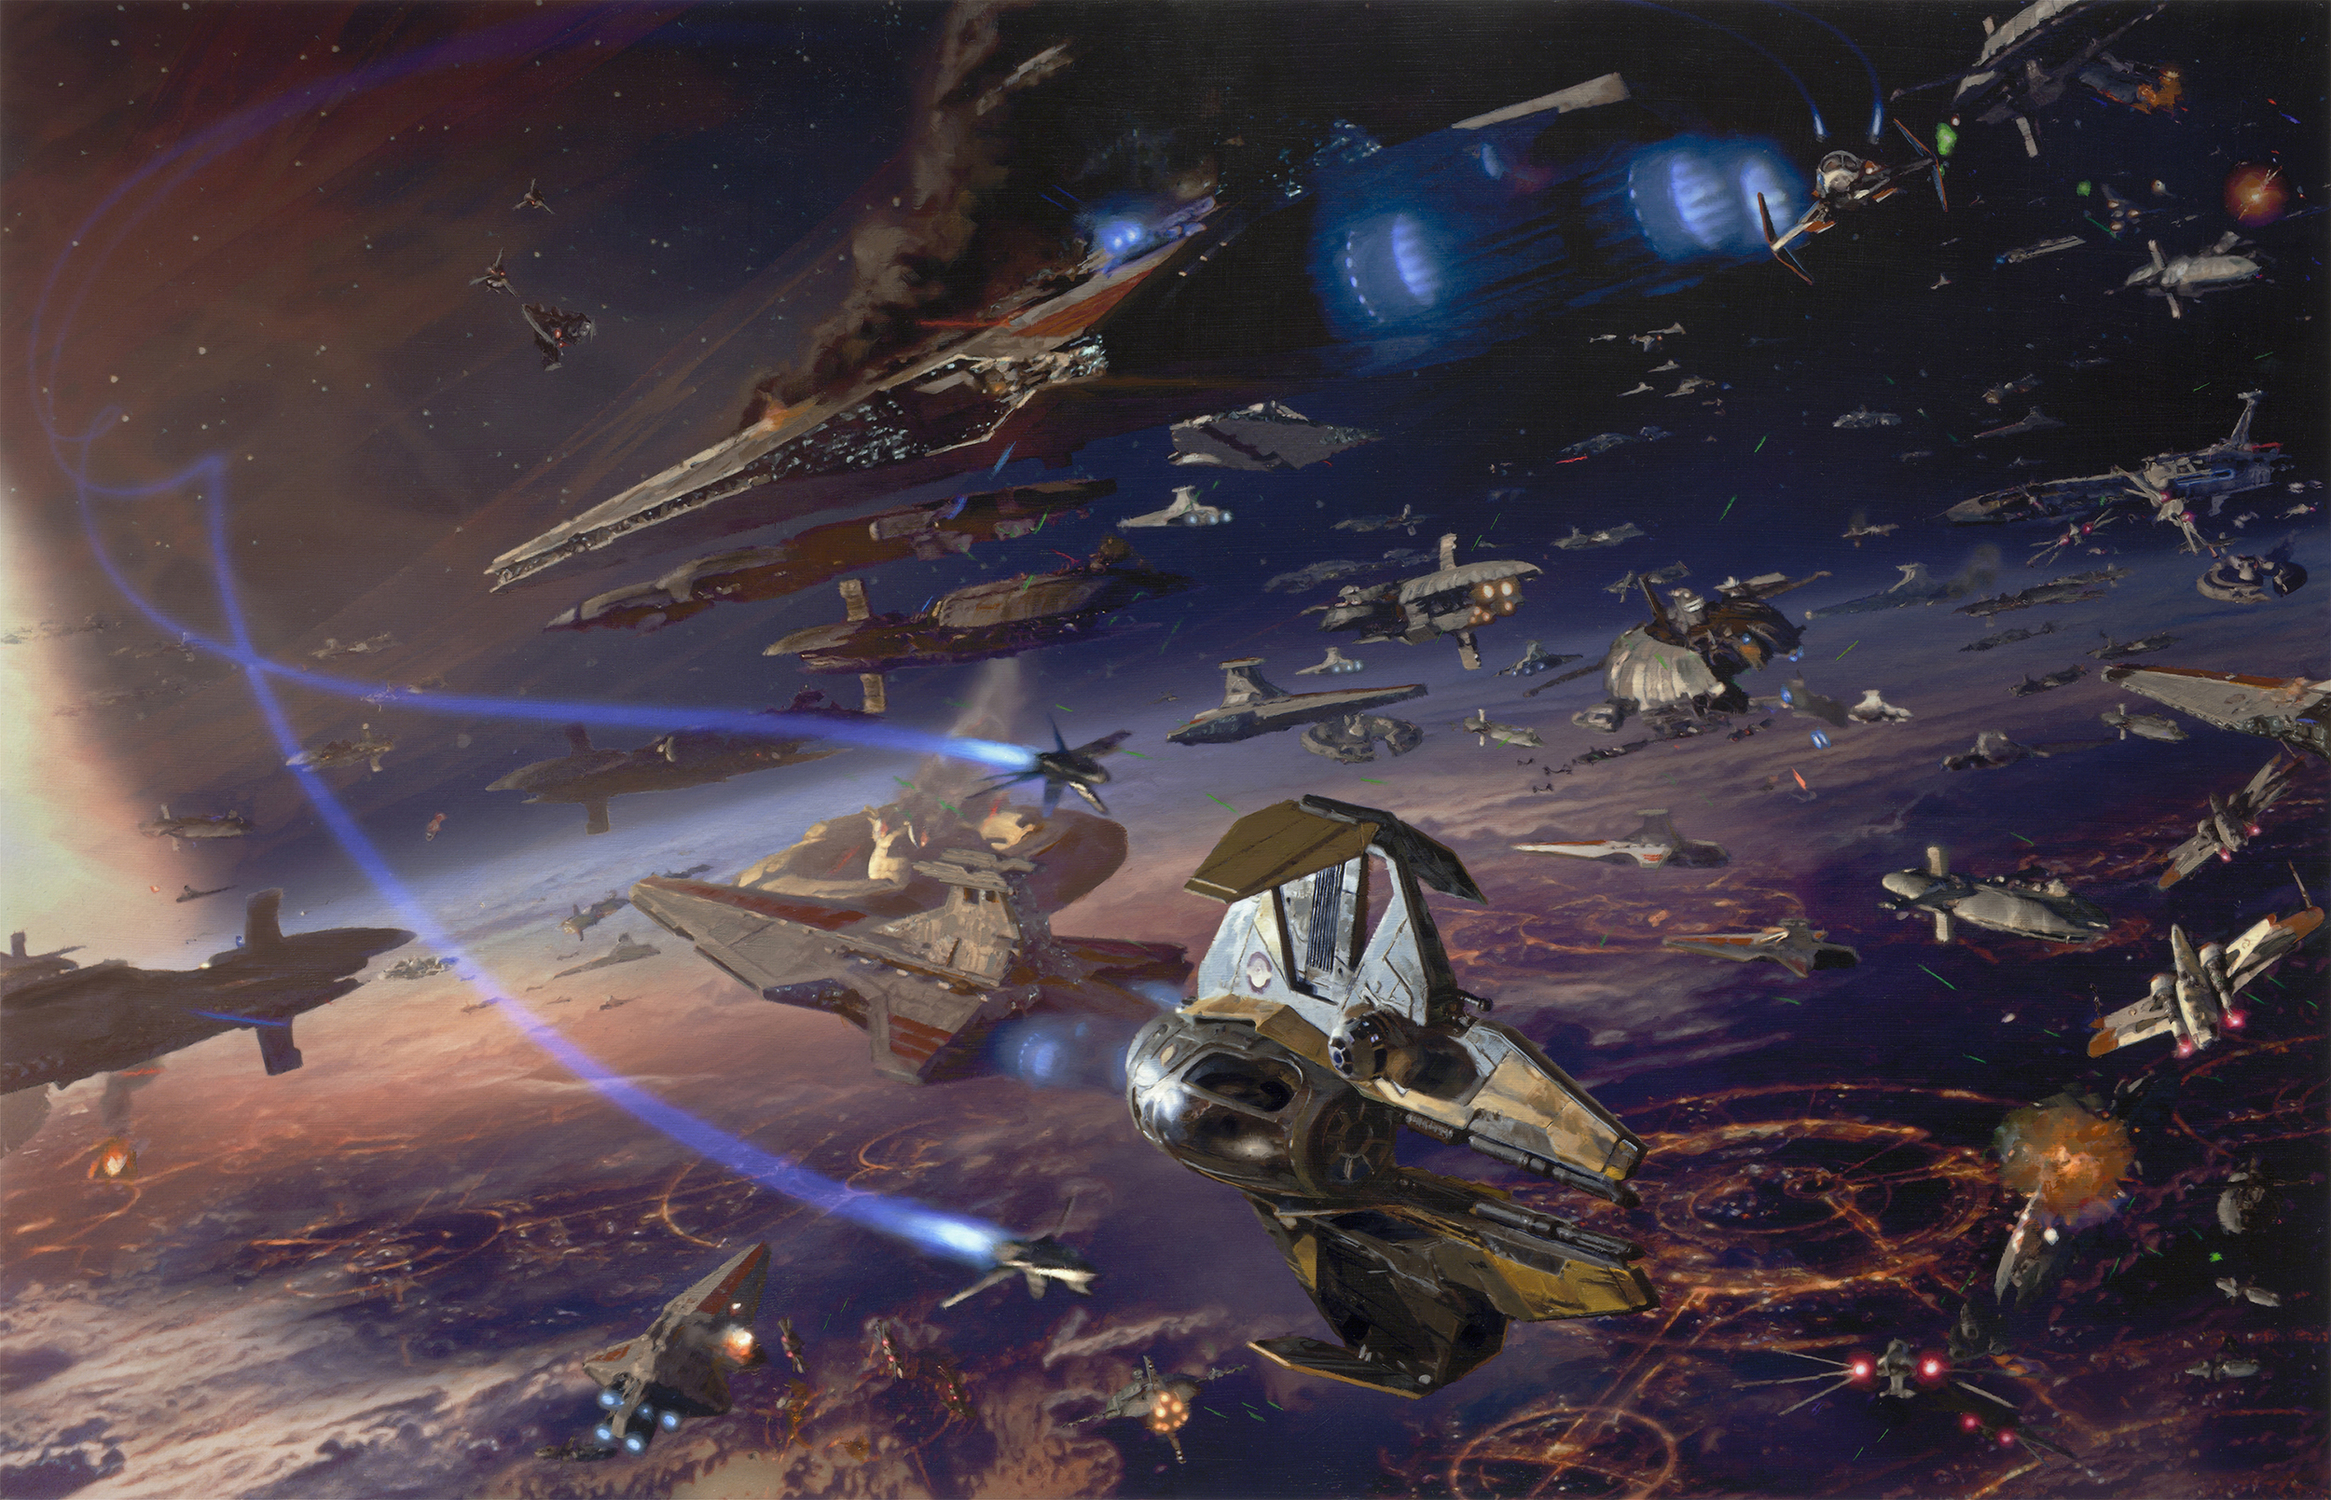 Star Wars:  The Battle of Coruscant Artwork by Dave Seeley